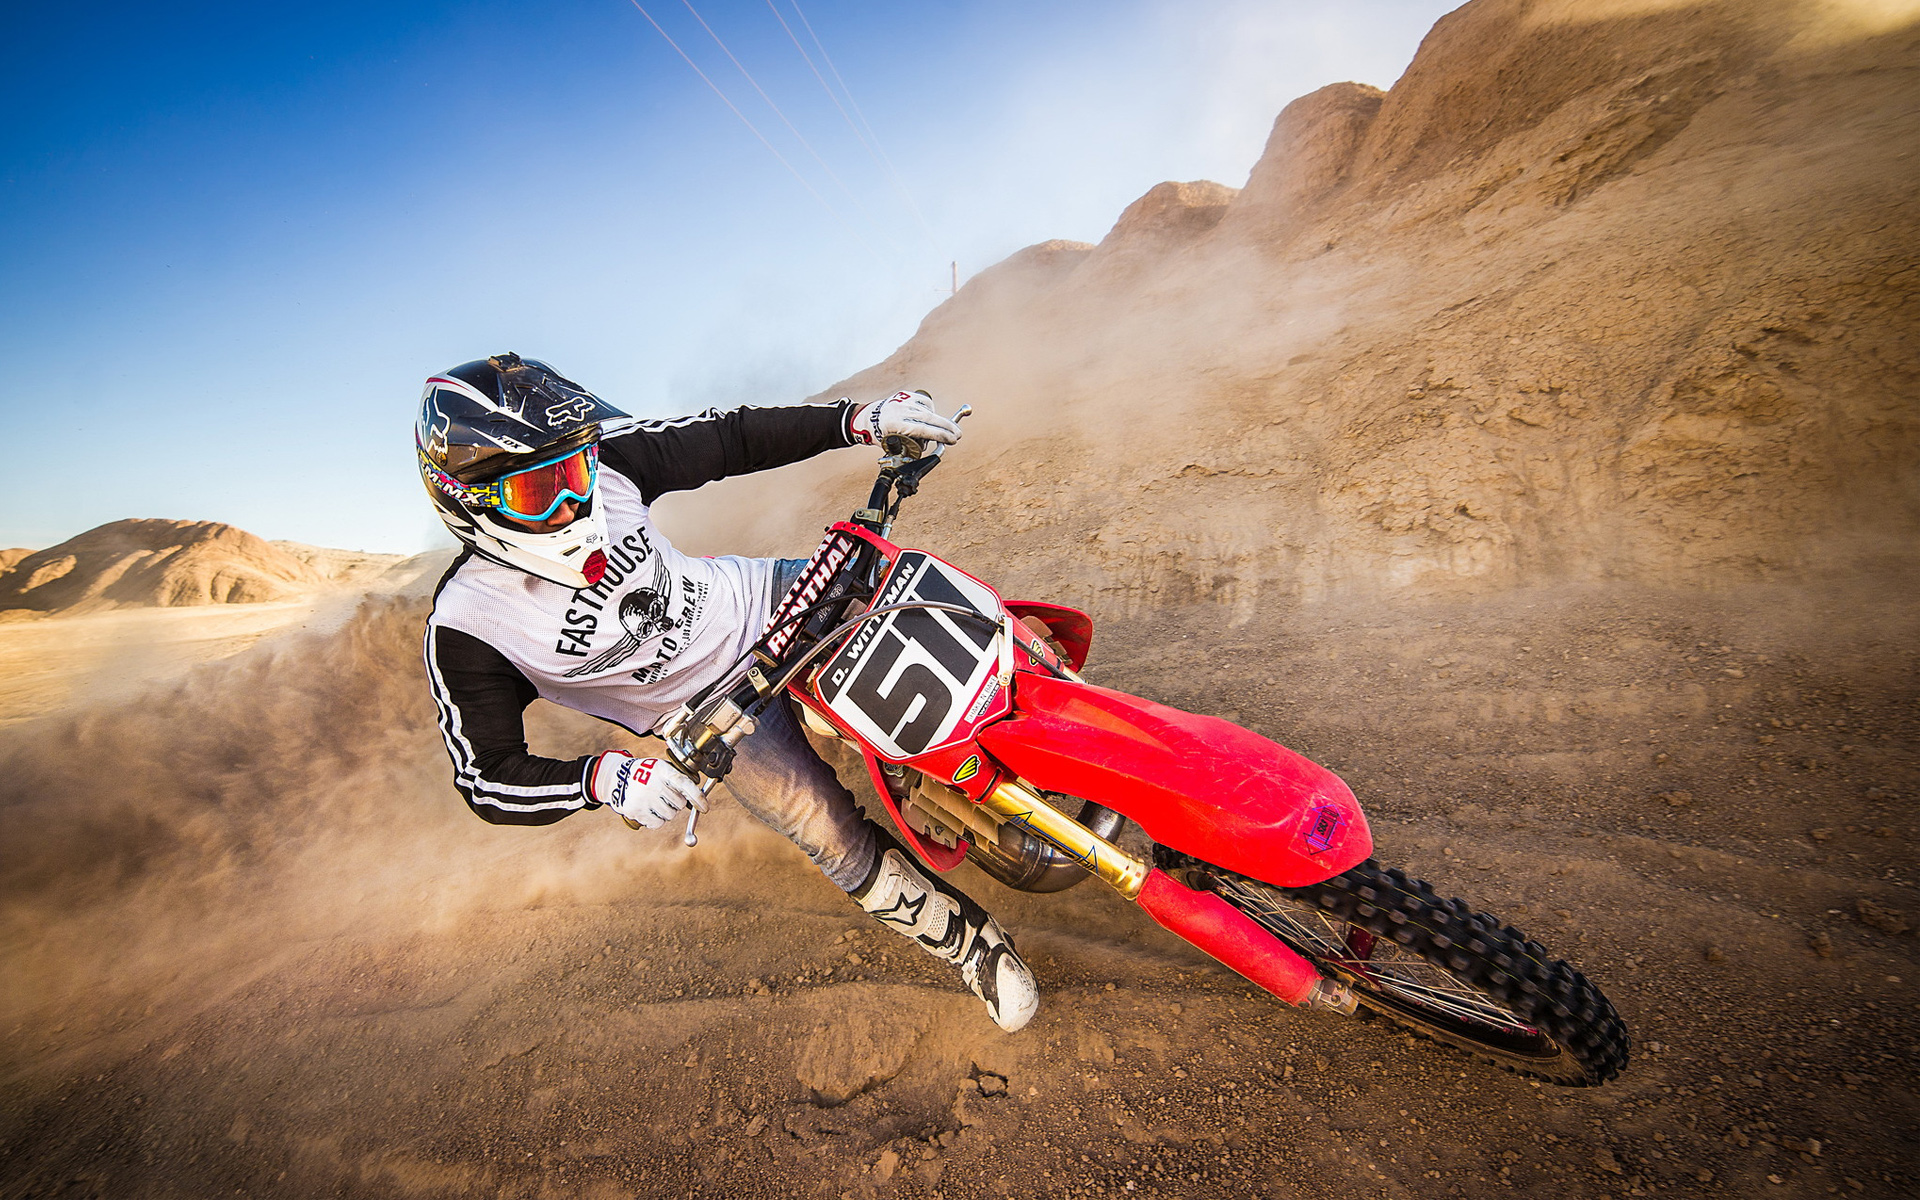 Sports 8k Wallpapers: Motorcycle Wallpapers, Photos And Desktop Backgrounds Up